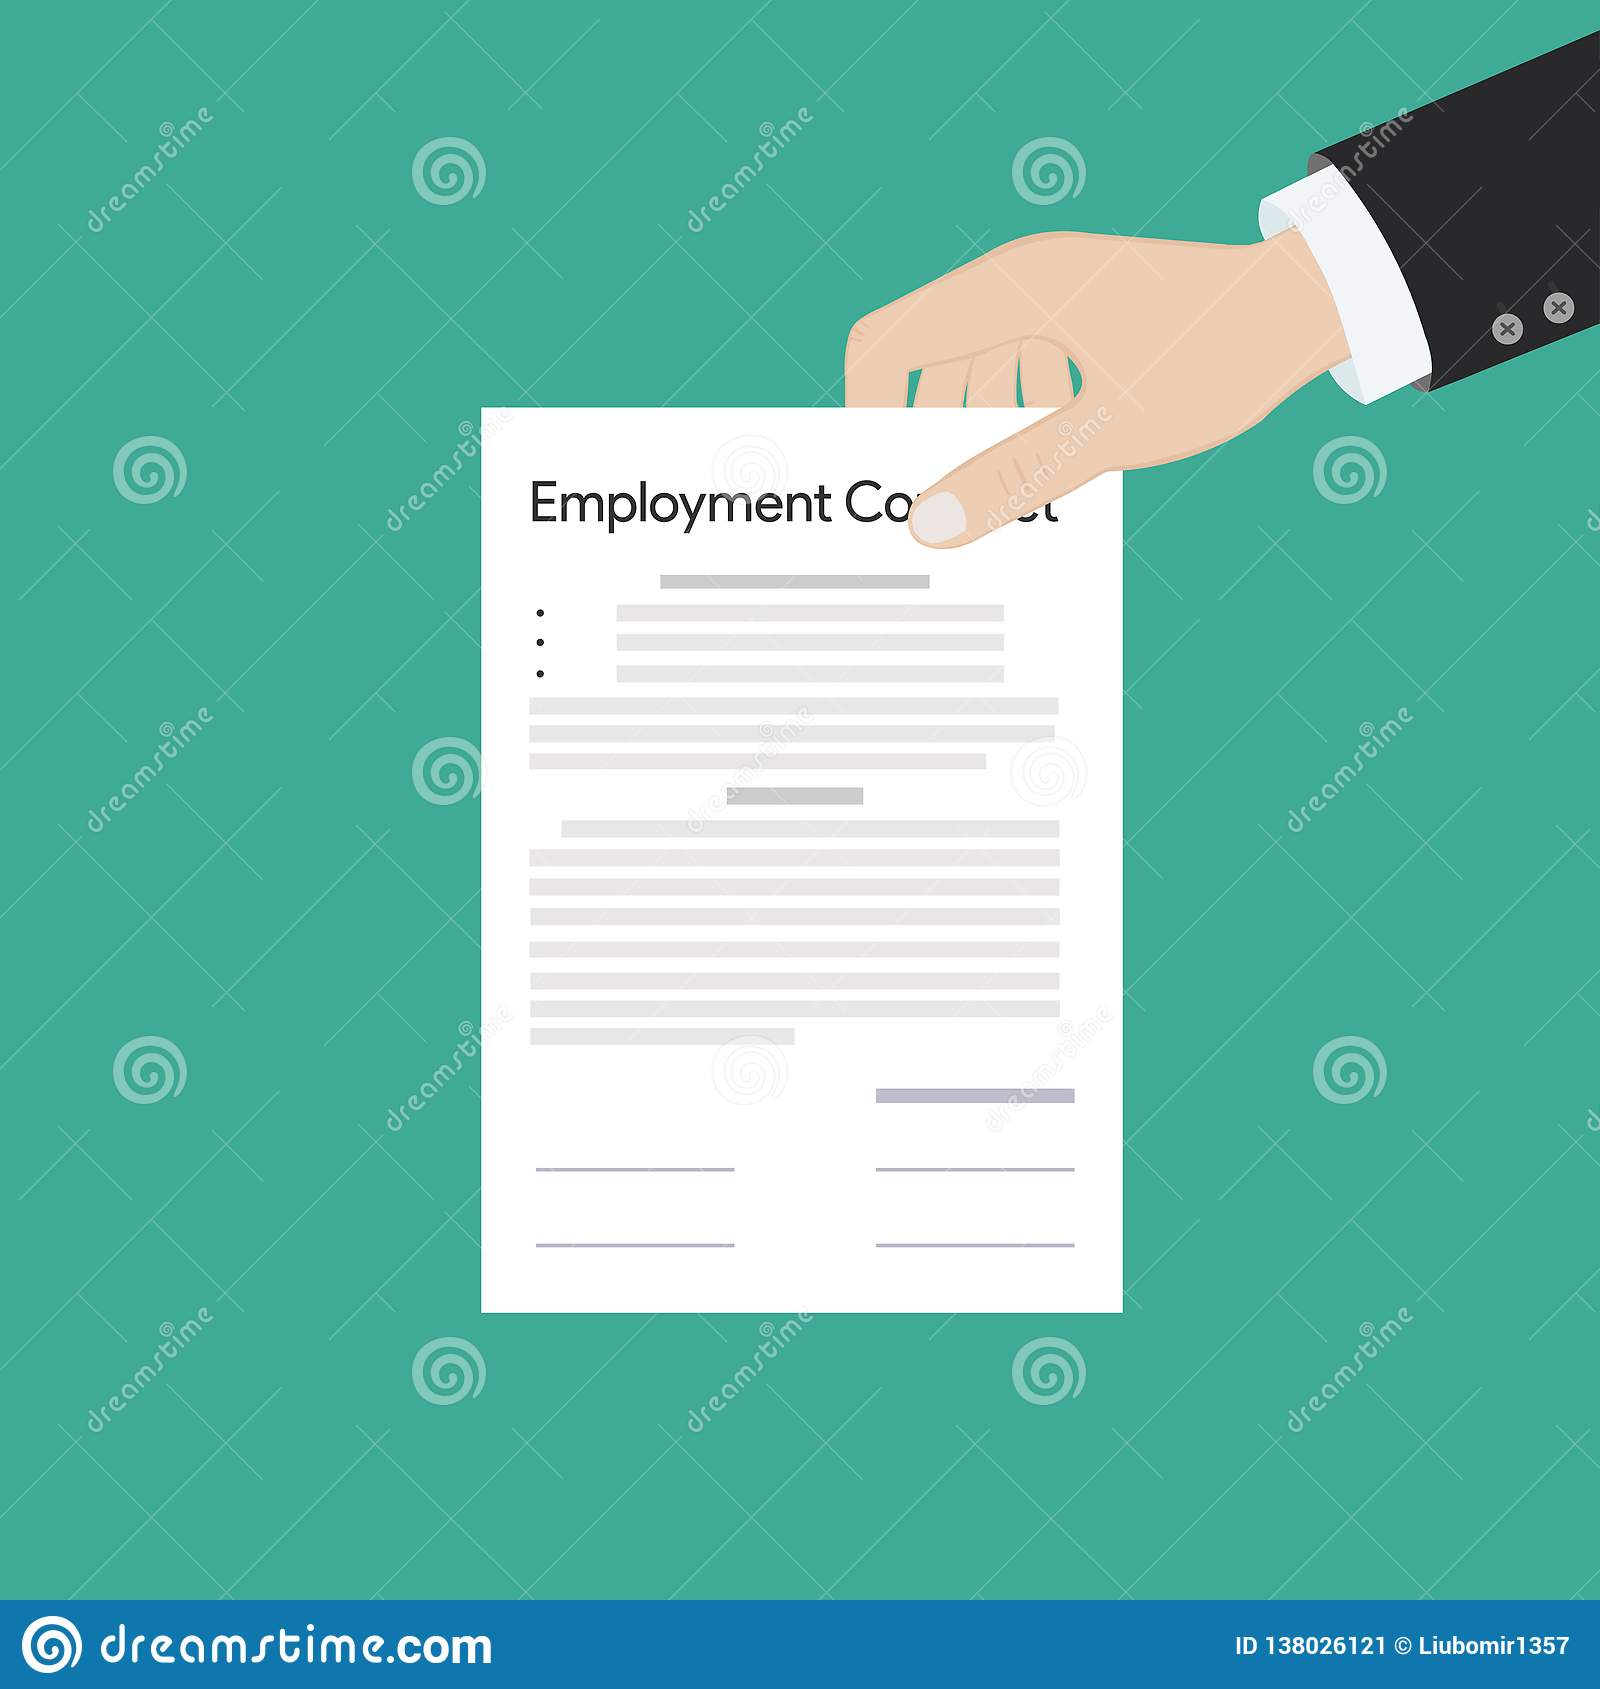 Employment contract paper document